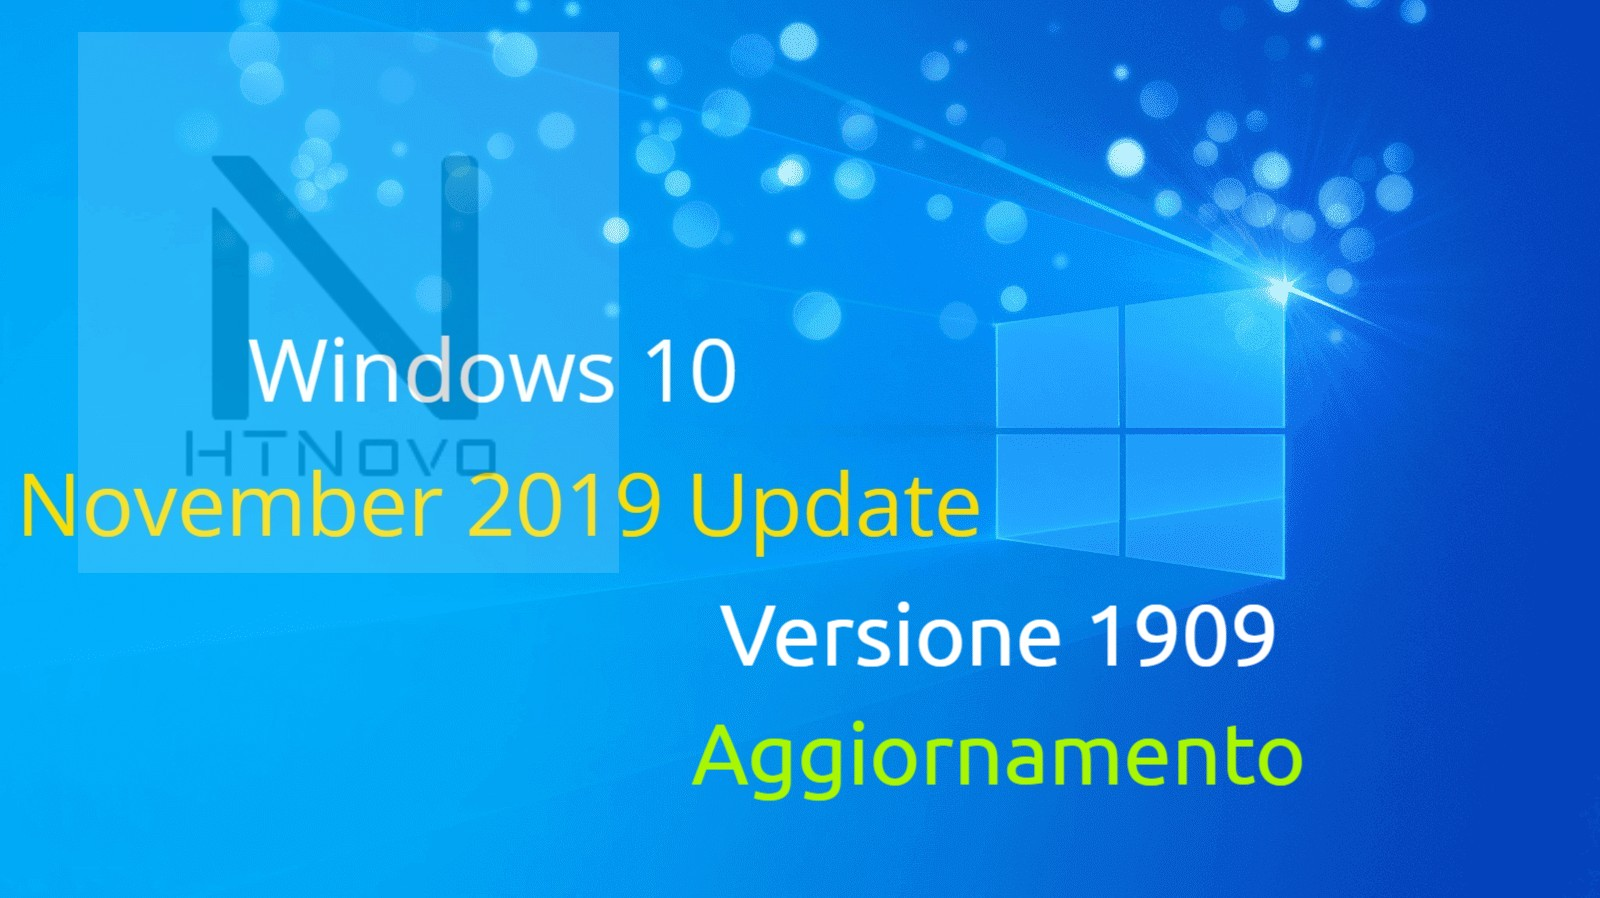 Video-come-ottenere-windows-10-november-2019-update